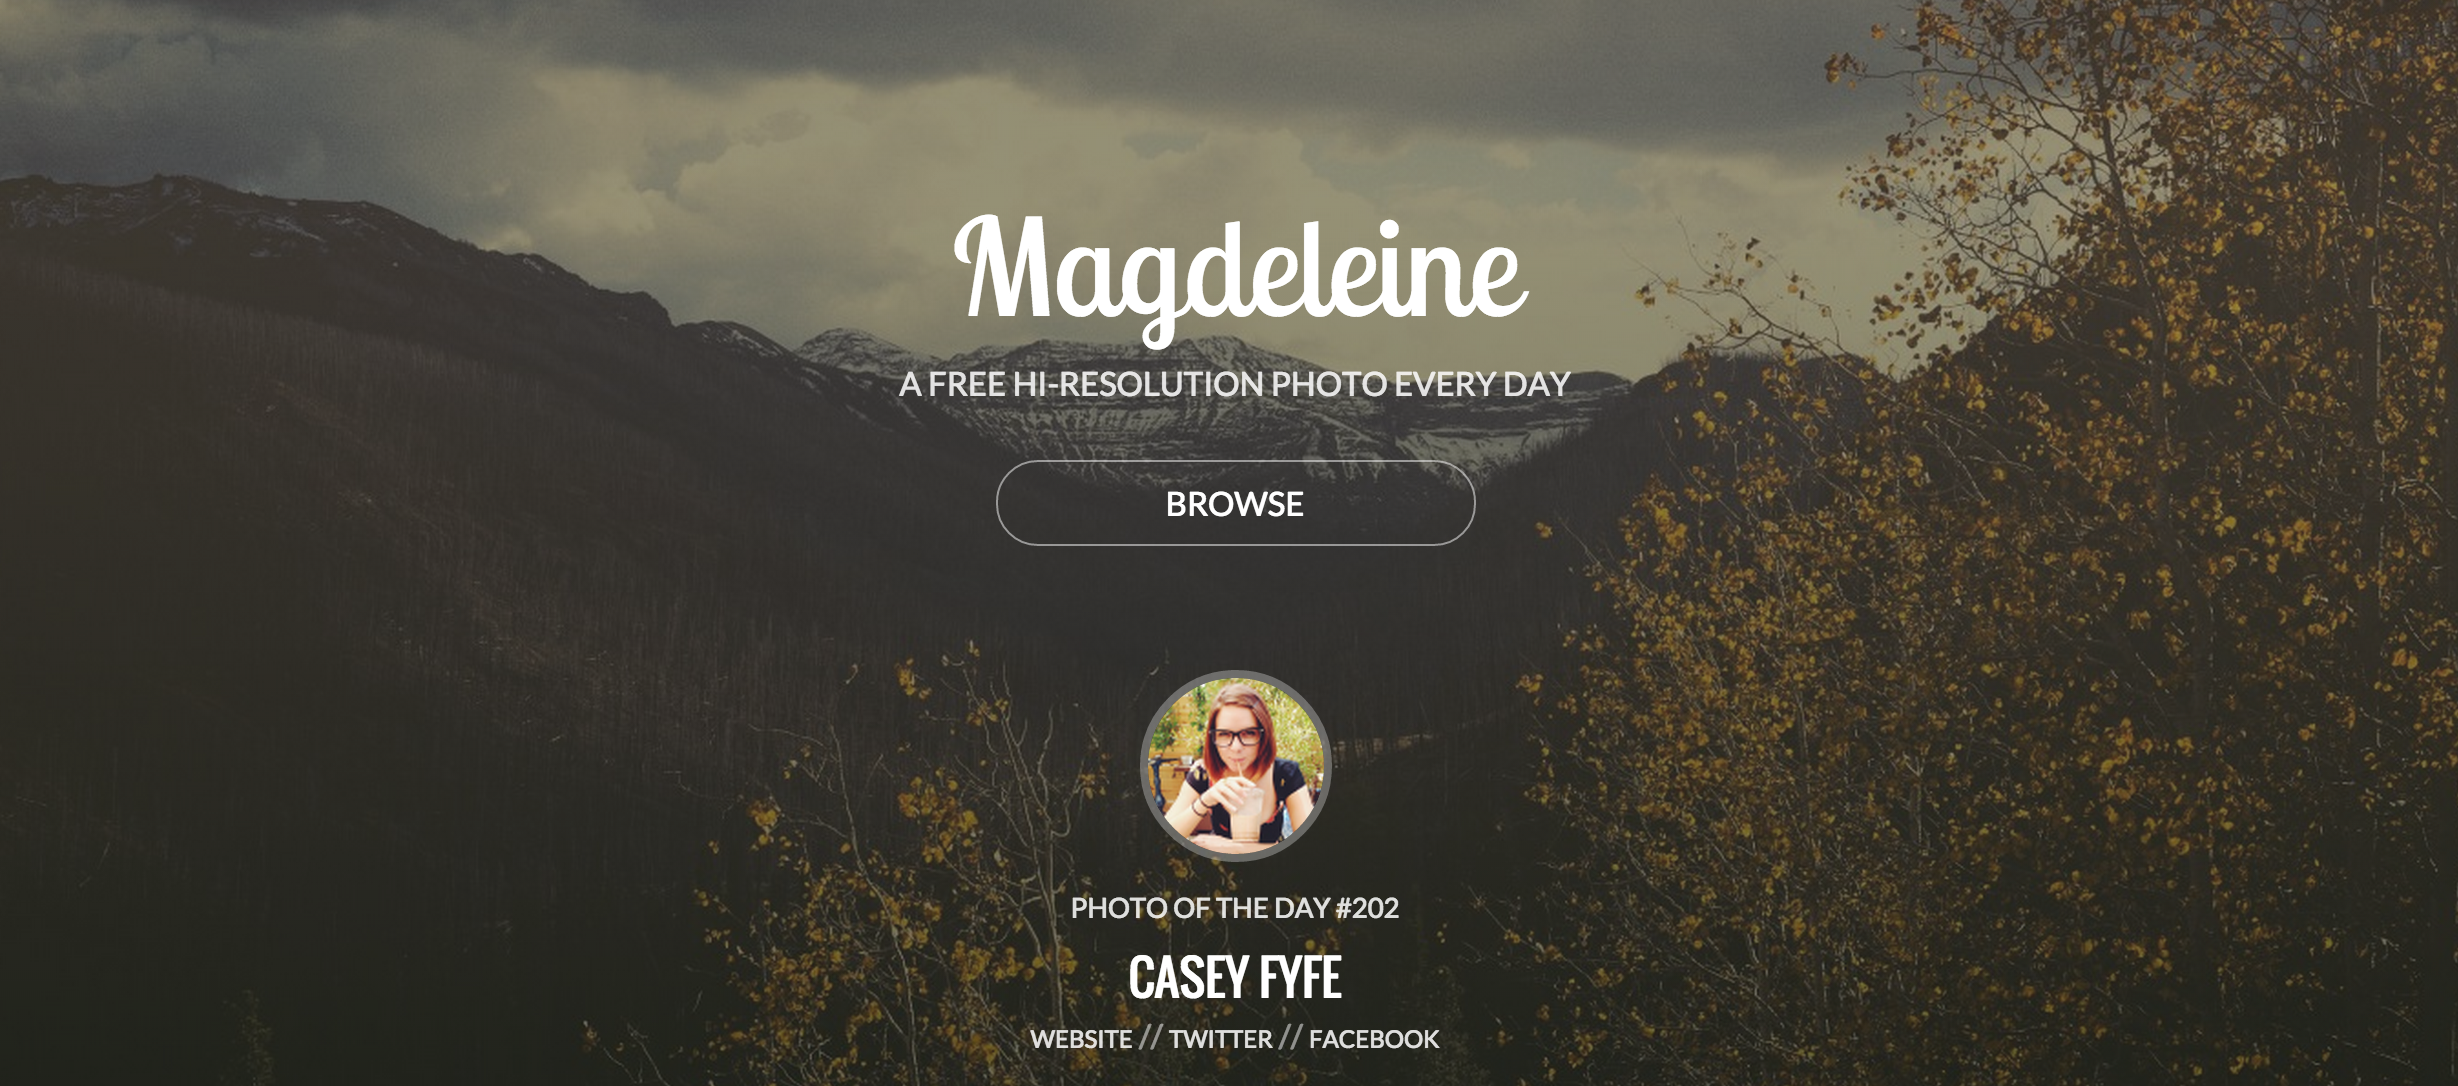 magdeleine.co